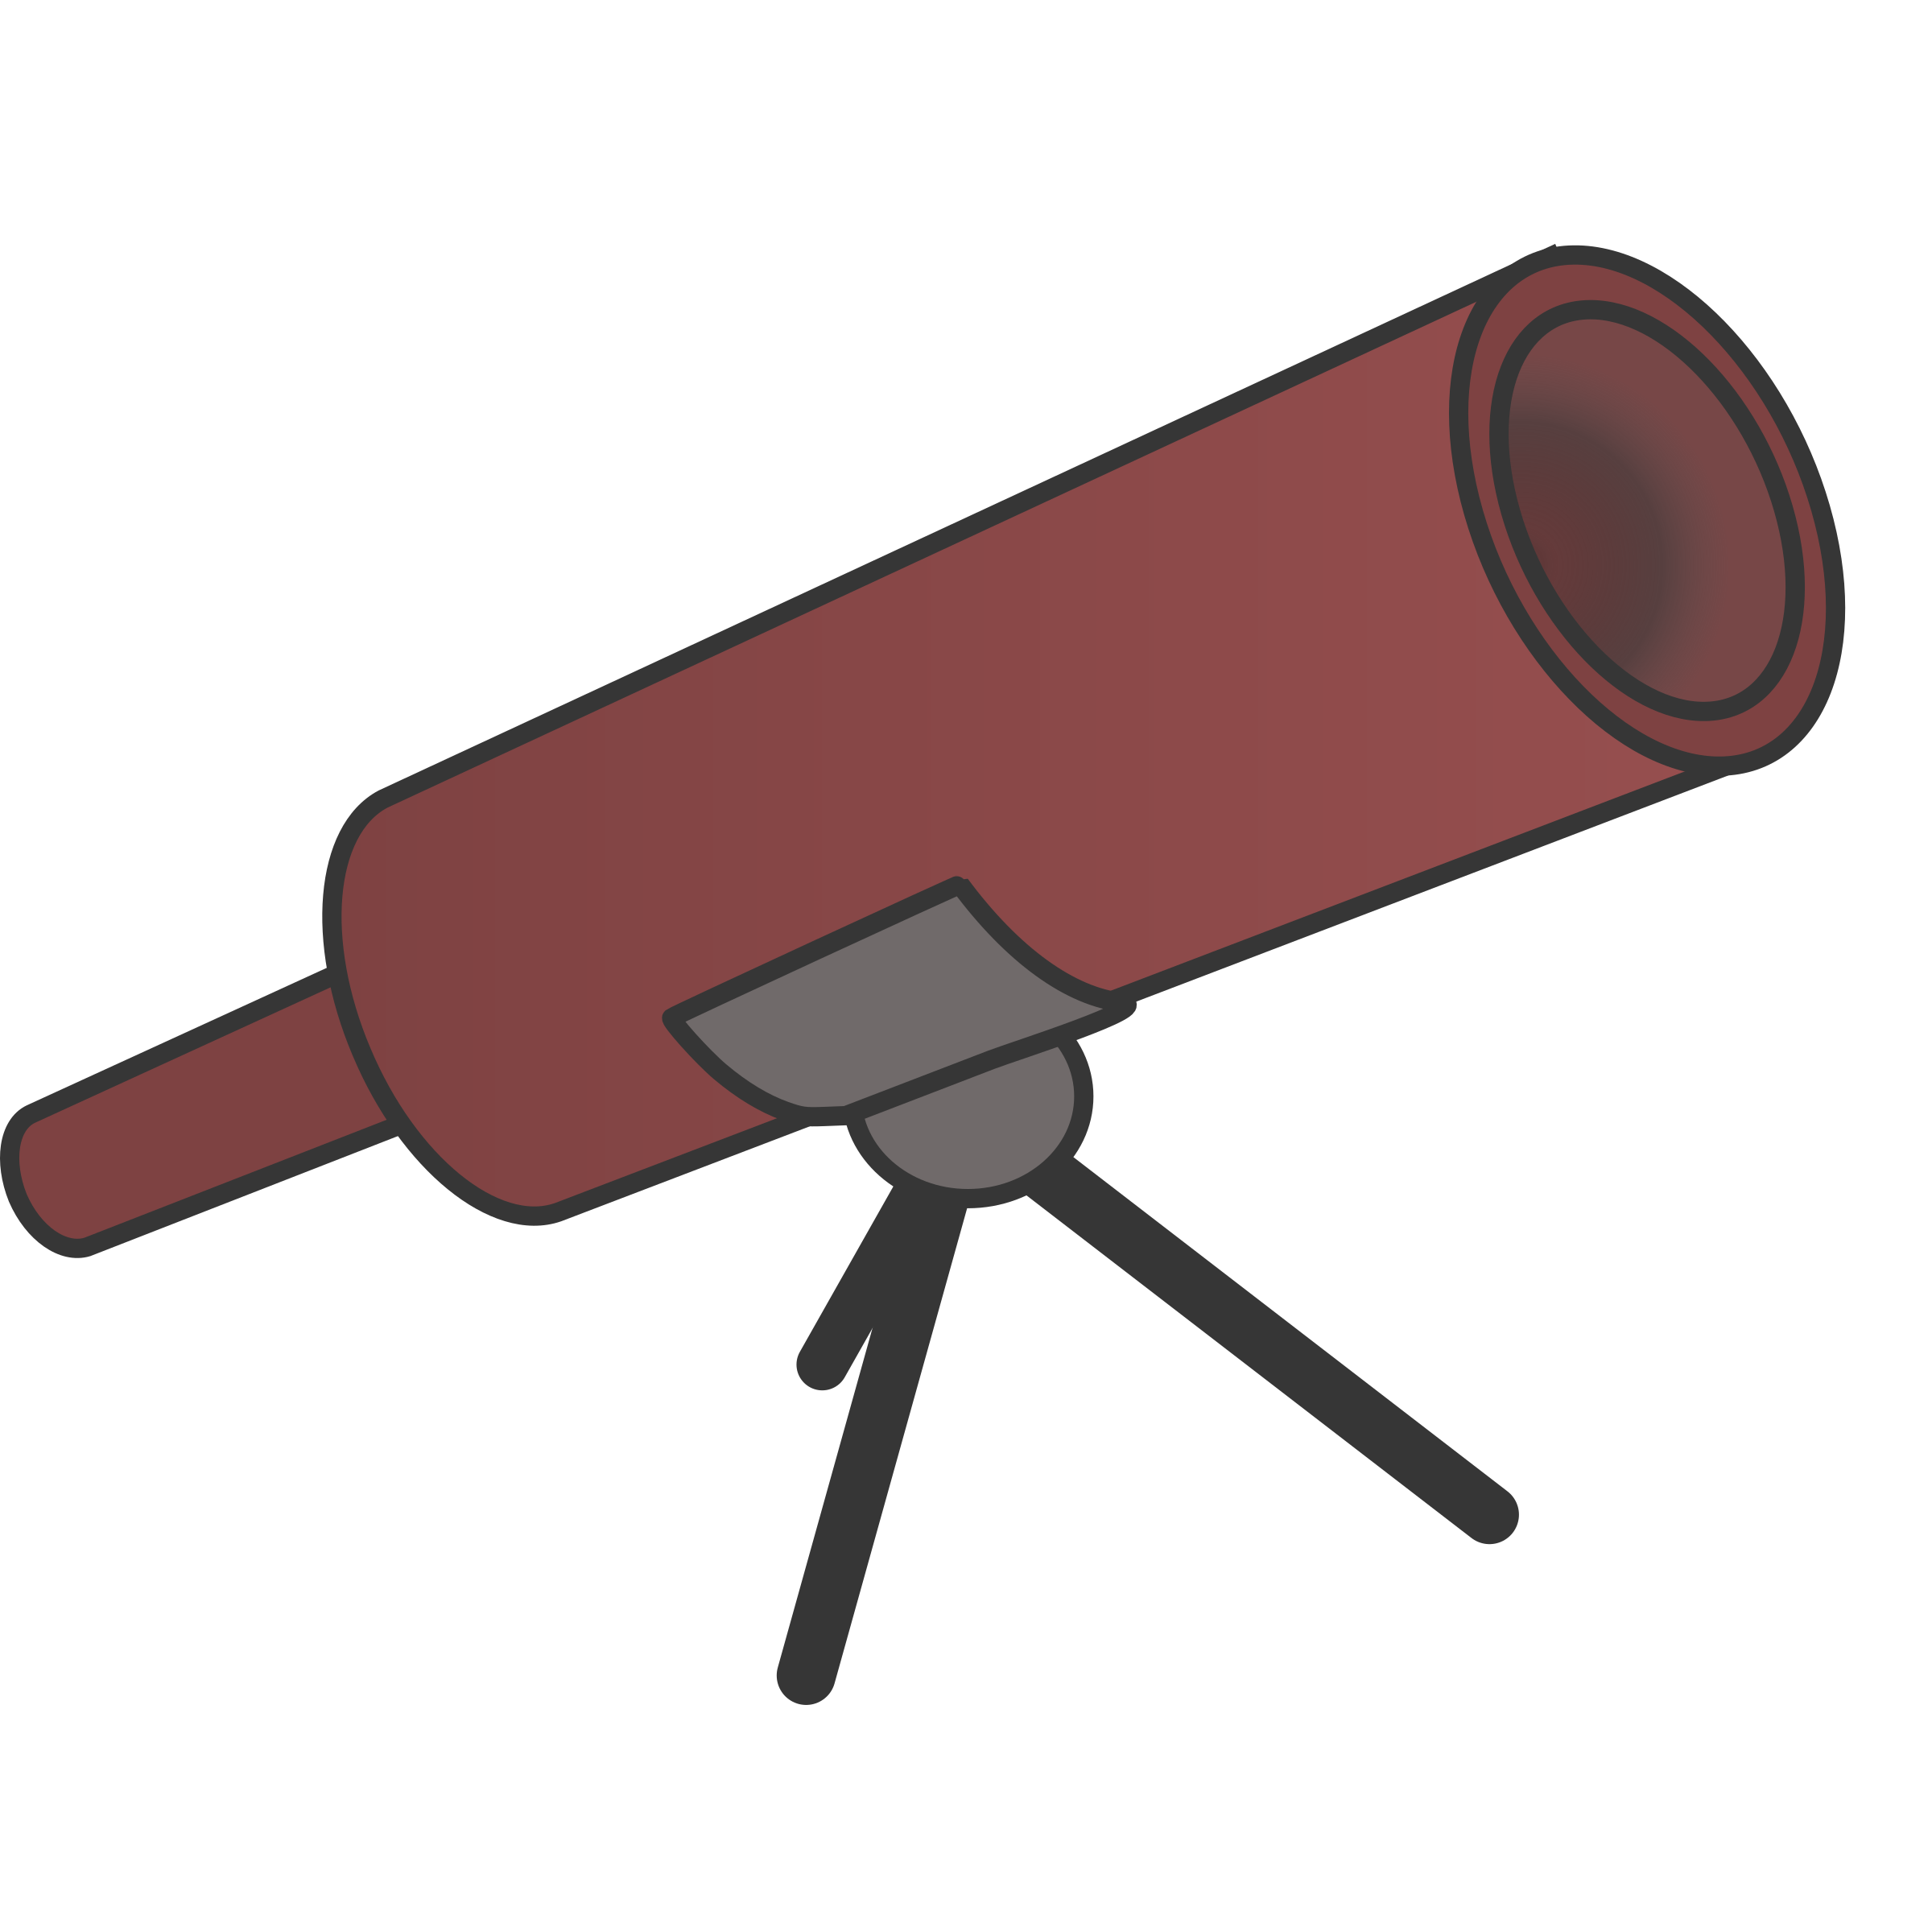 Simple braun cartoony telescope by rdevries